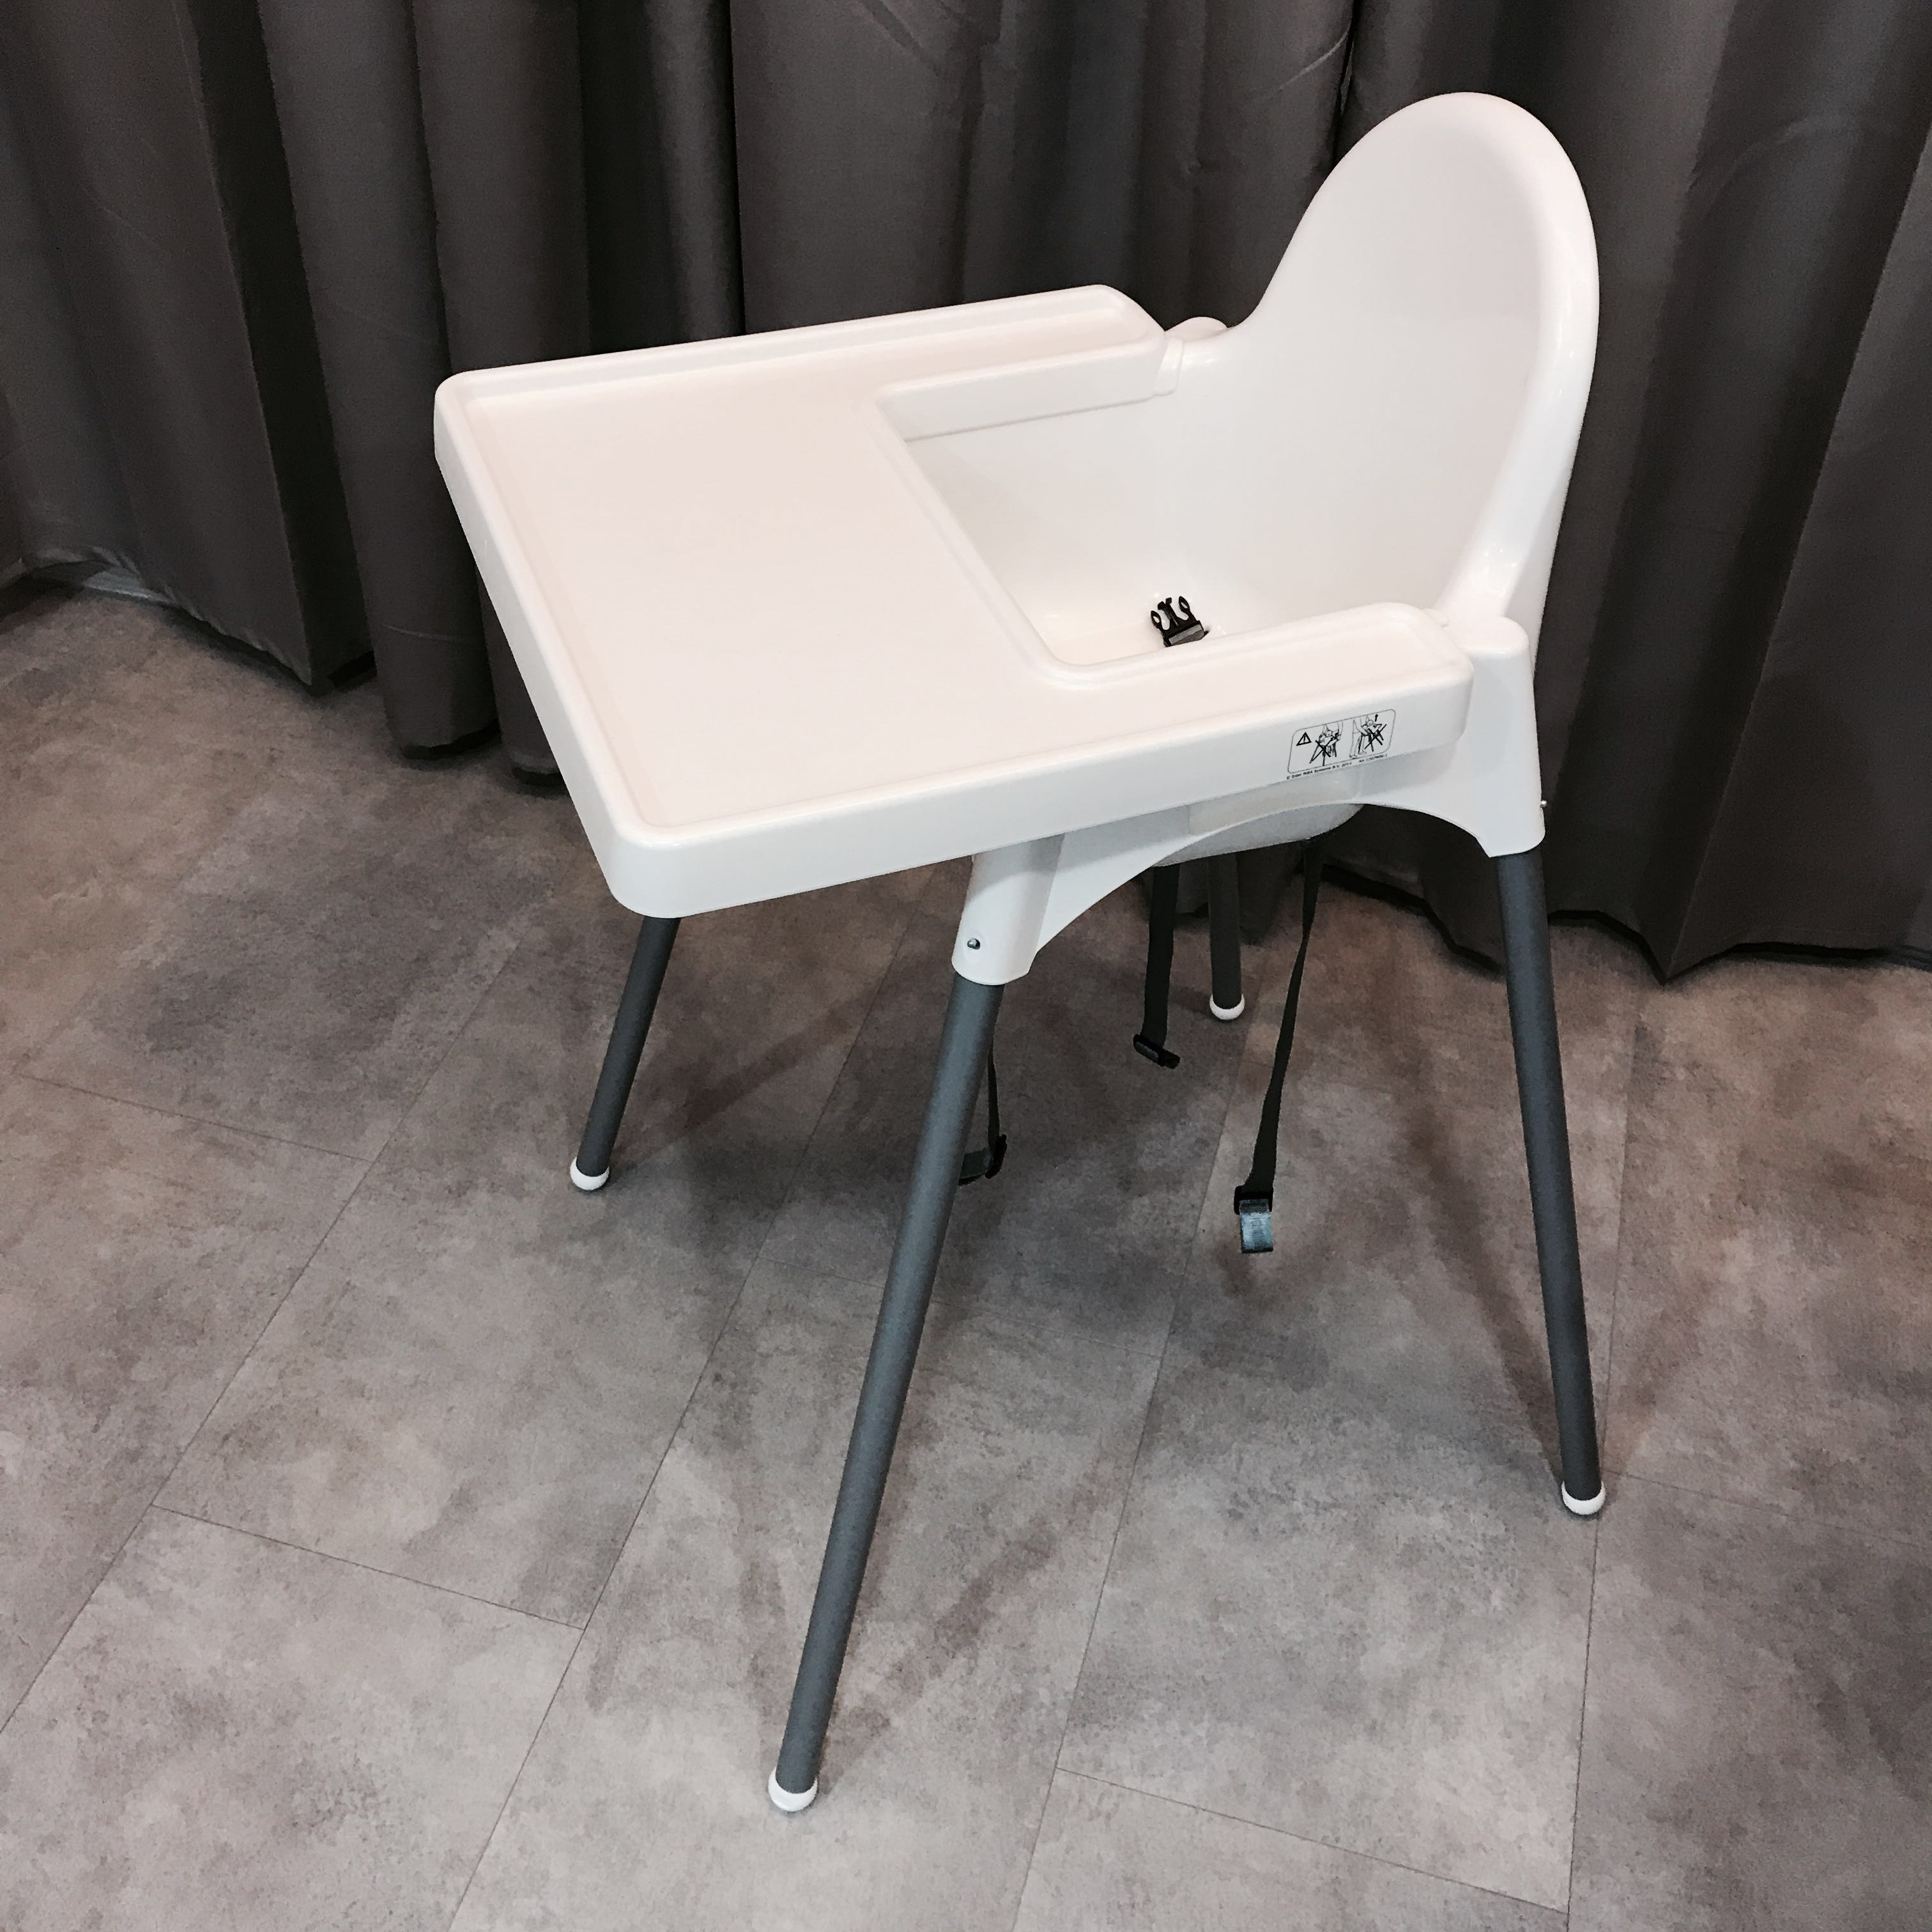 Ikea high chair no tray